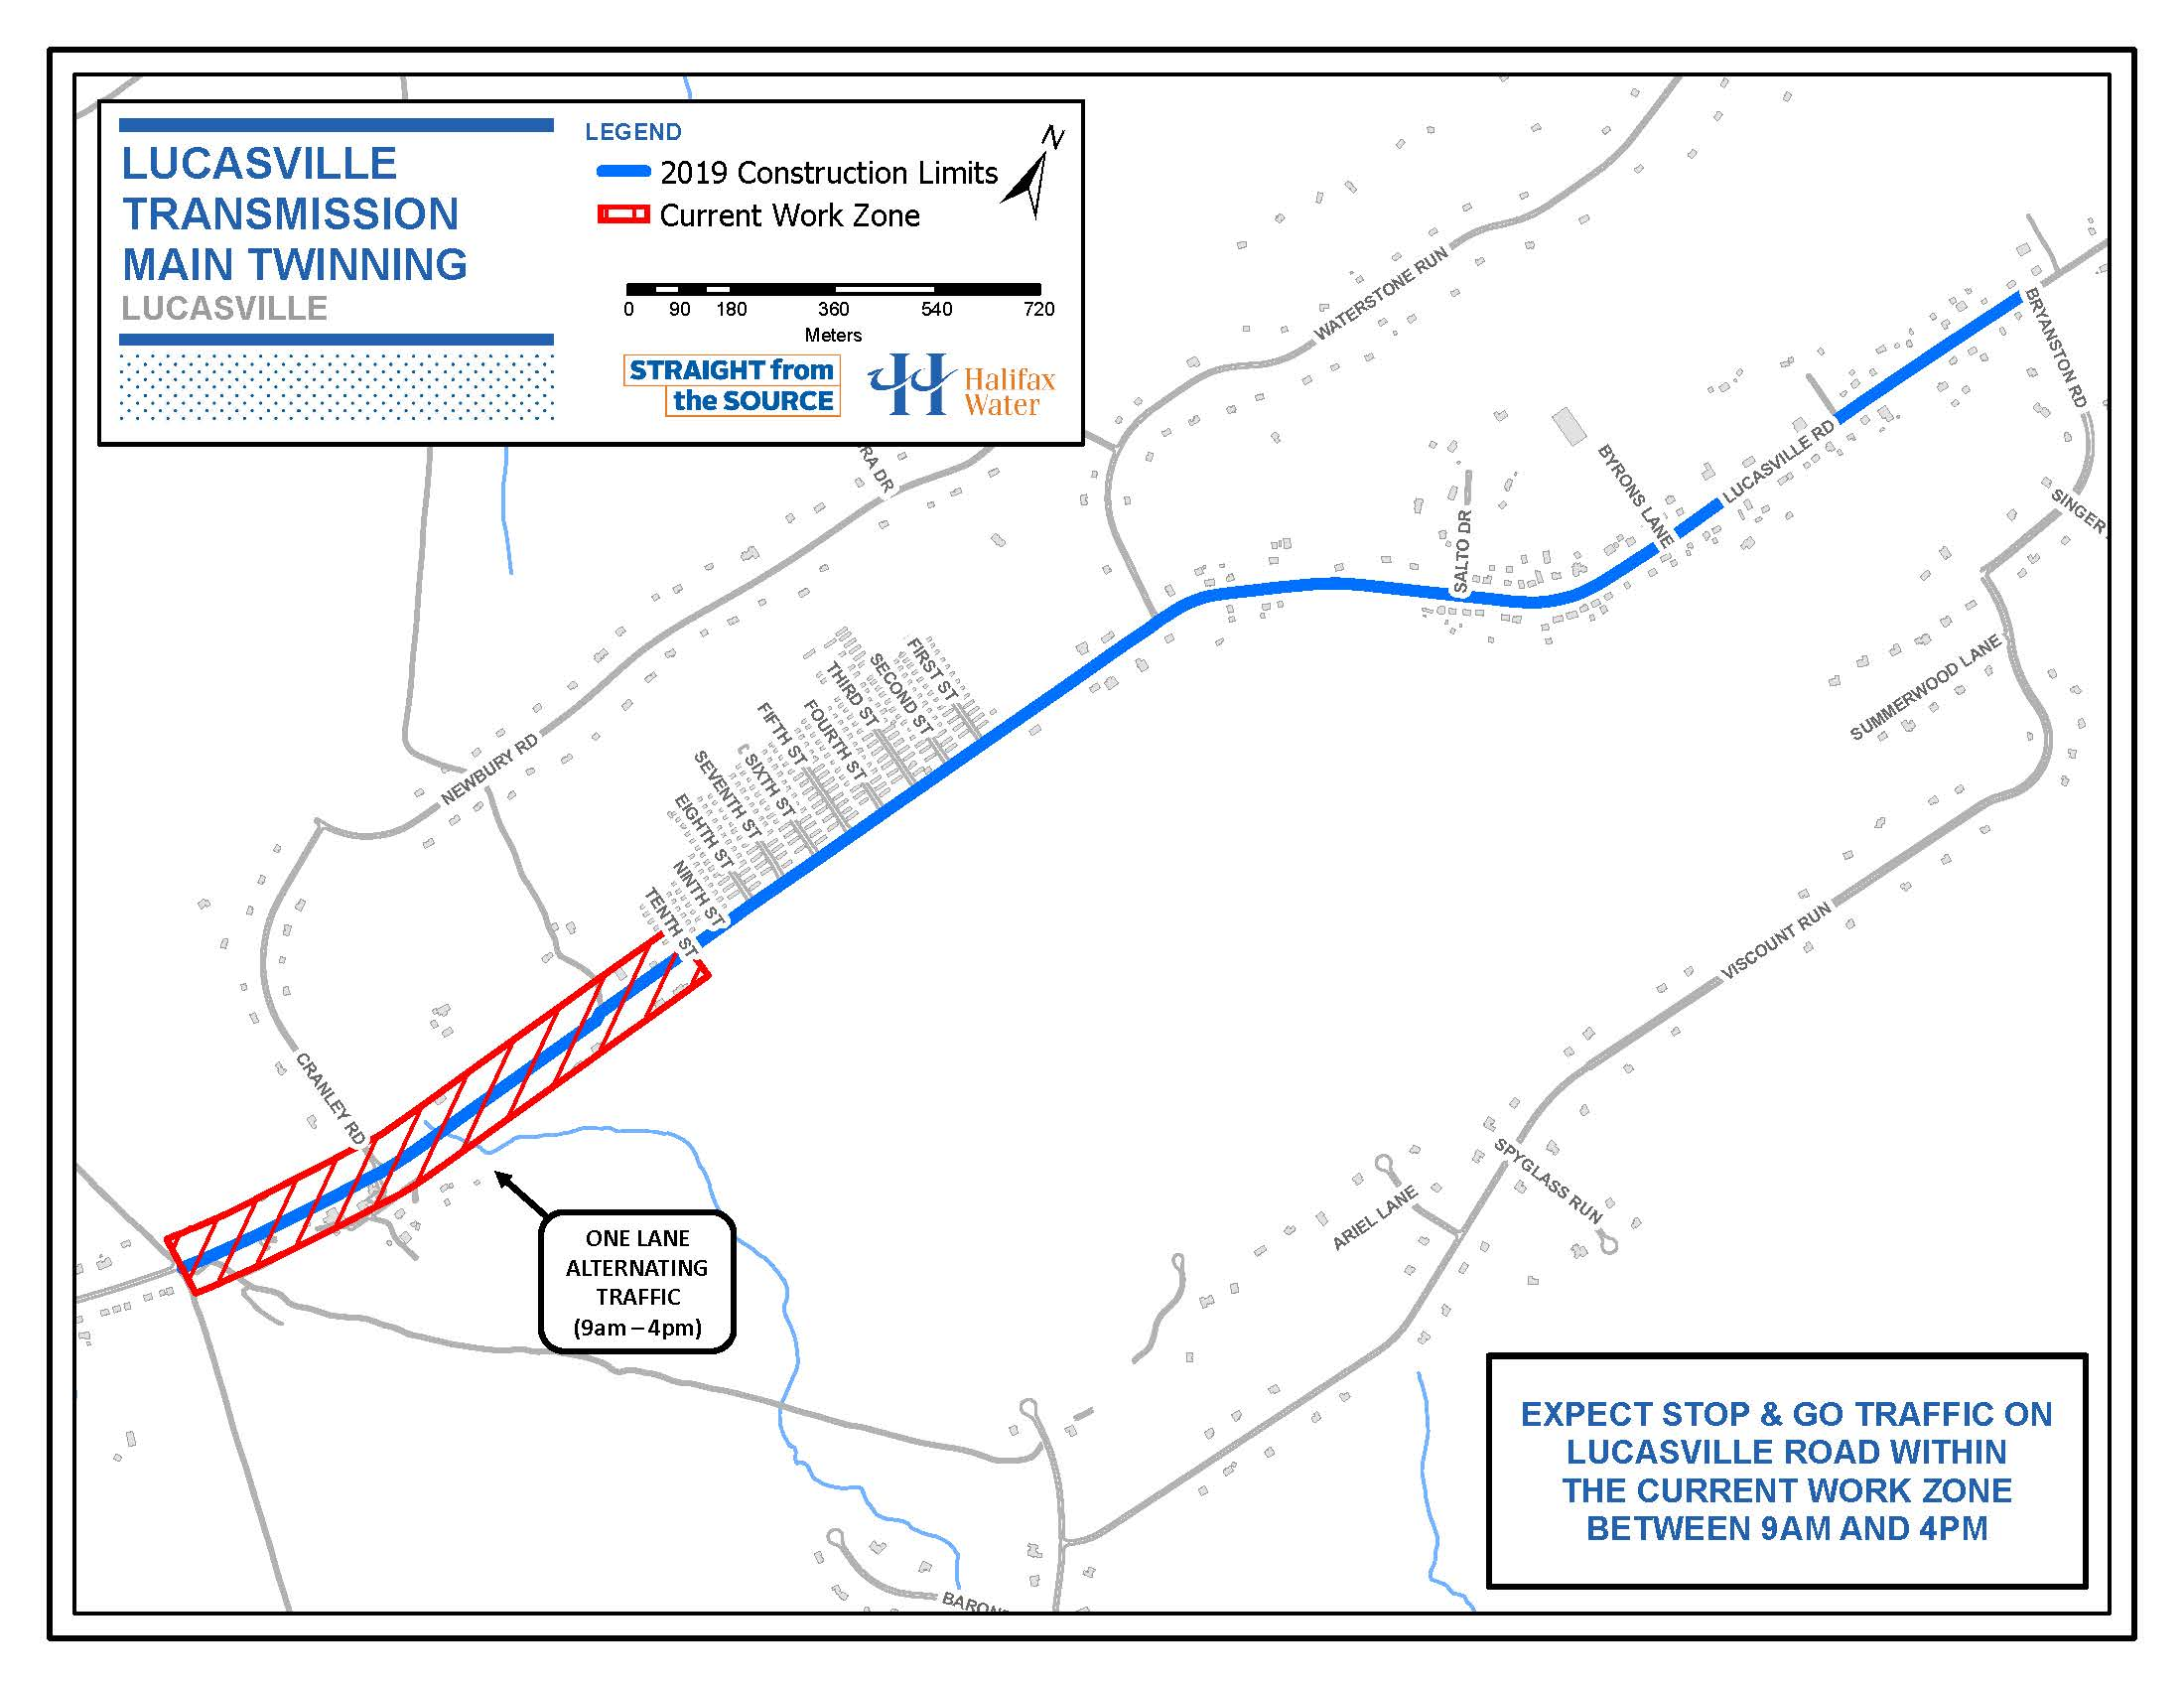 05-31-2019 Lucasville Road - Water Main Work Map